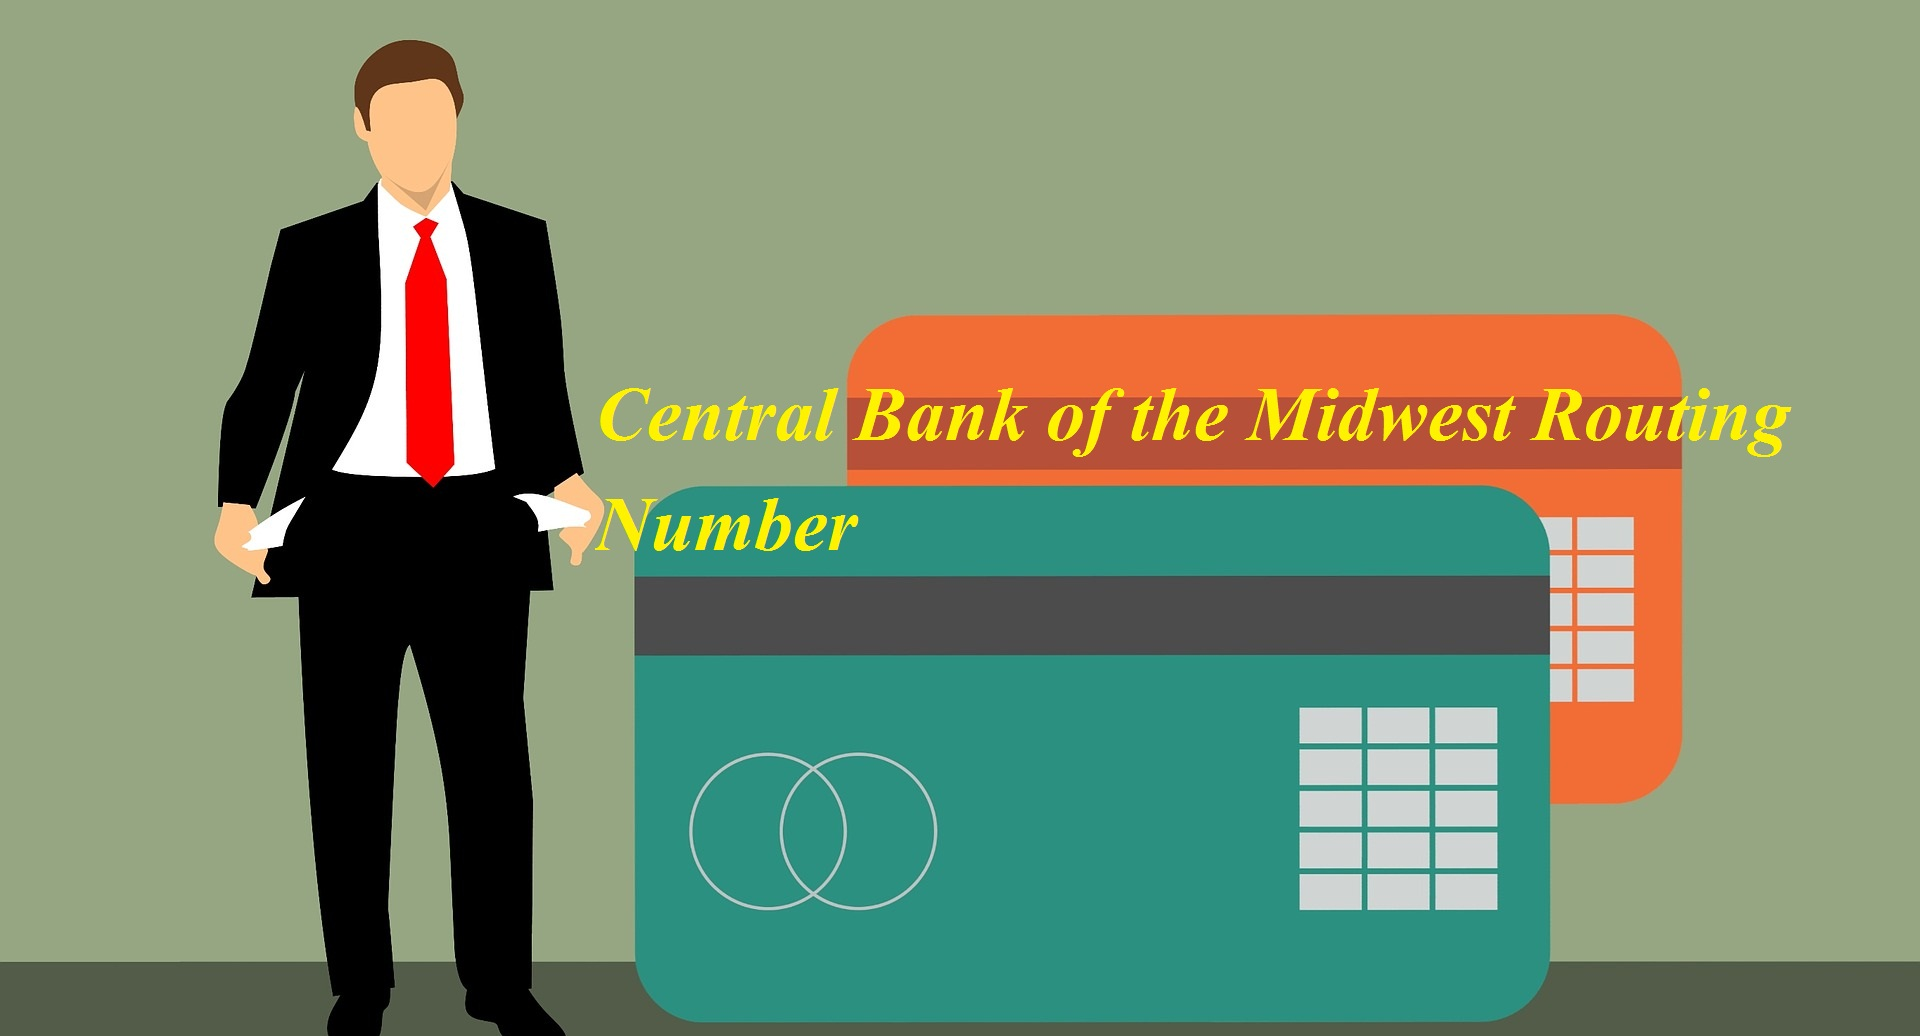 Central Bank of the Midwest Routing Number